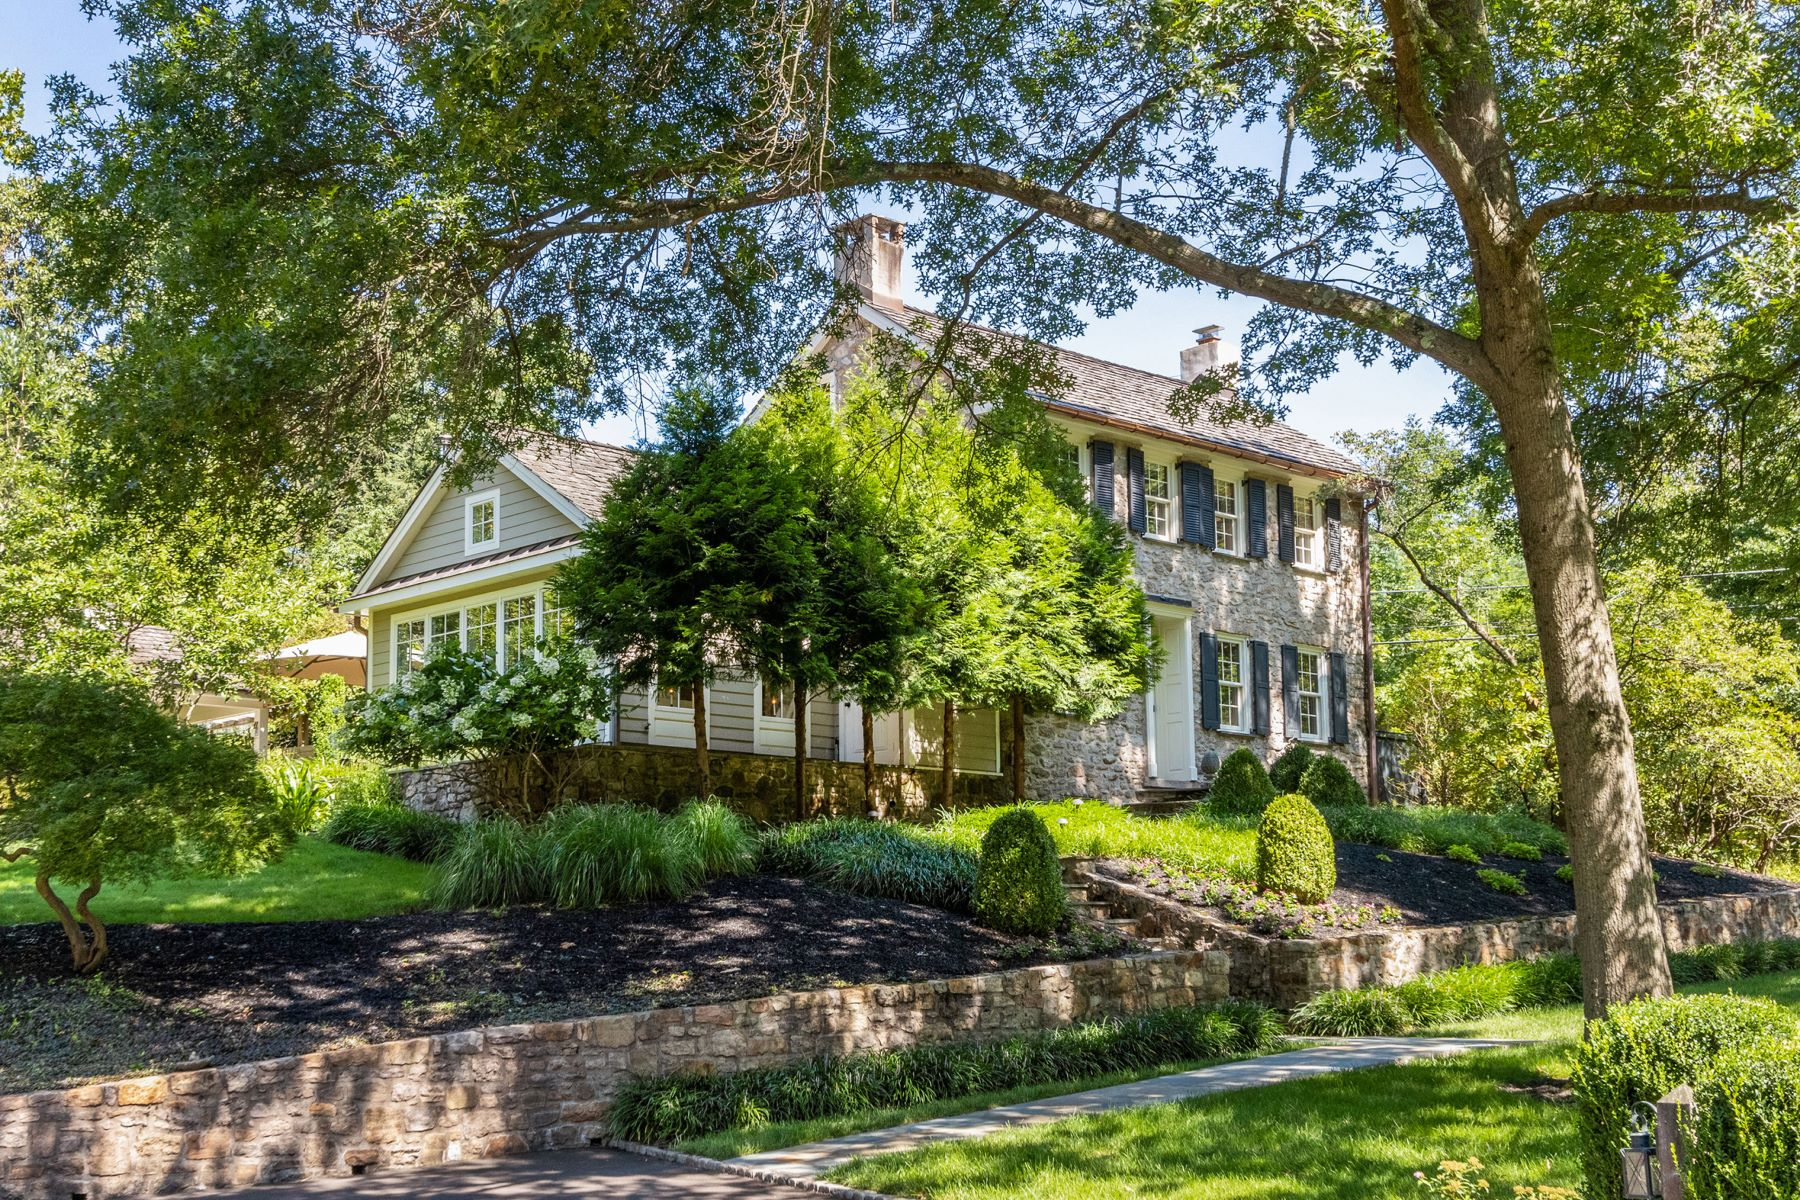 Single Family Homes for Sale at Beech Tree Ridge 2968 BURNT HOUSE HILL RD, Doylestown, Pennsylvania 18902 United States